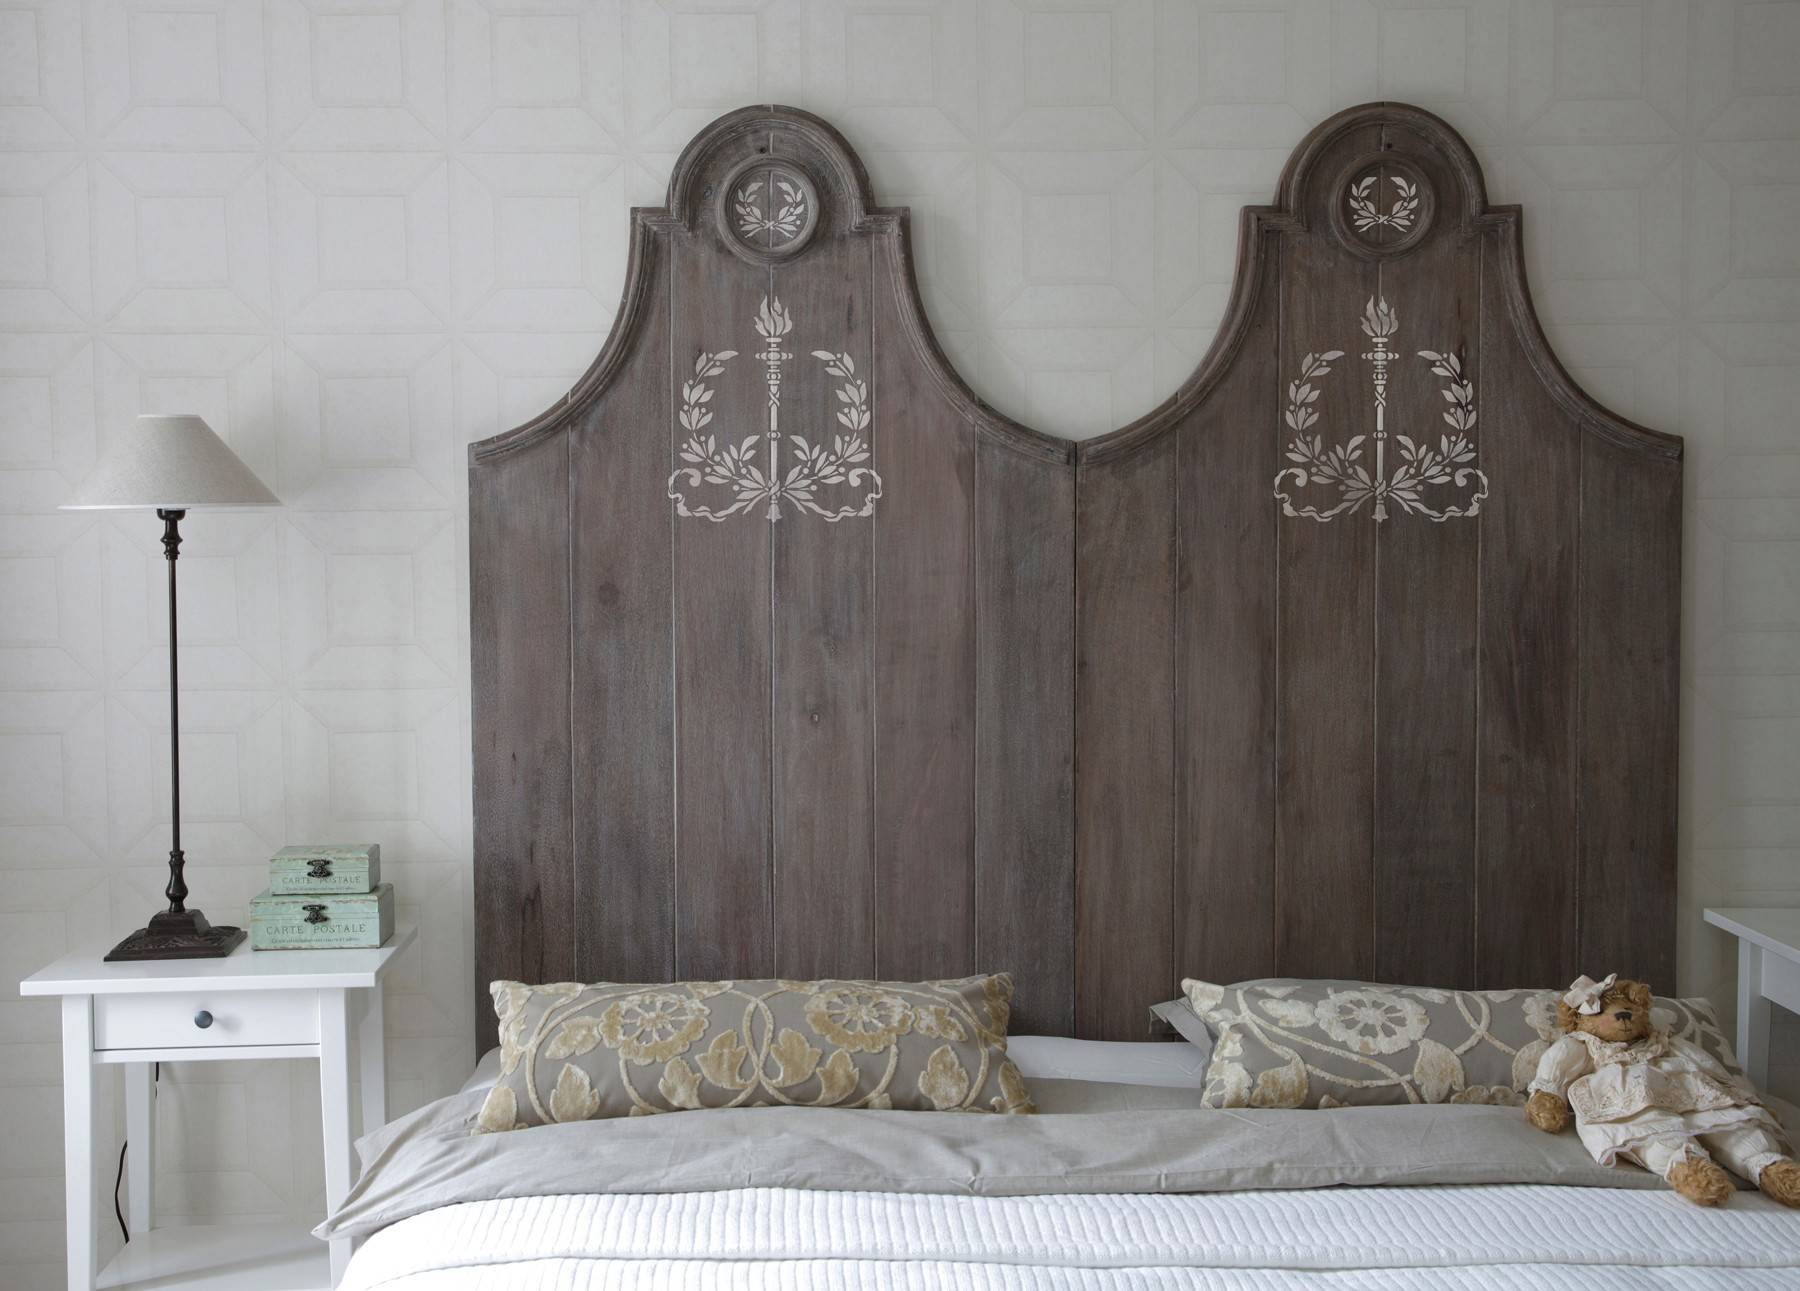 Consider use of old doors, wrought iron gates or sections of fencing as a headboard. Dress them up with a stencil drawing, or consider stenciling a pattern right onto the wall itself.